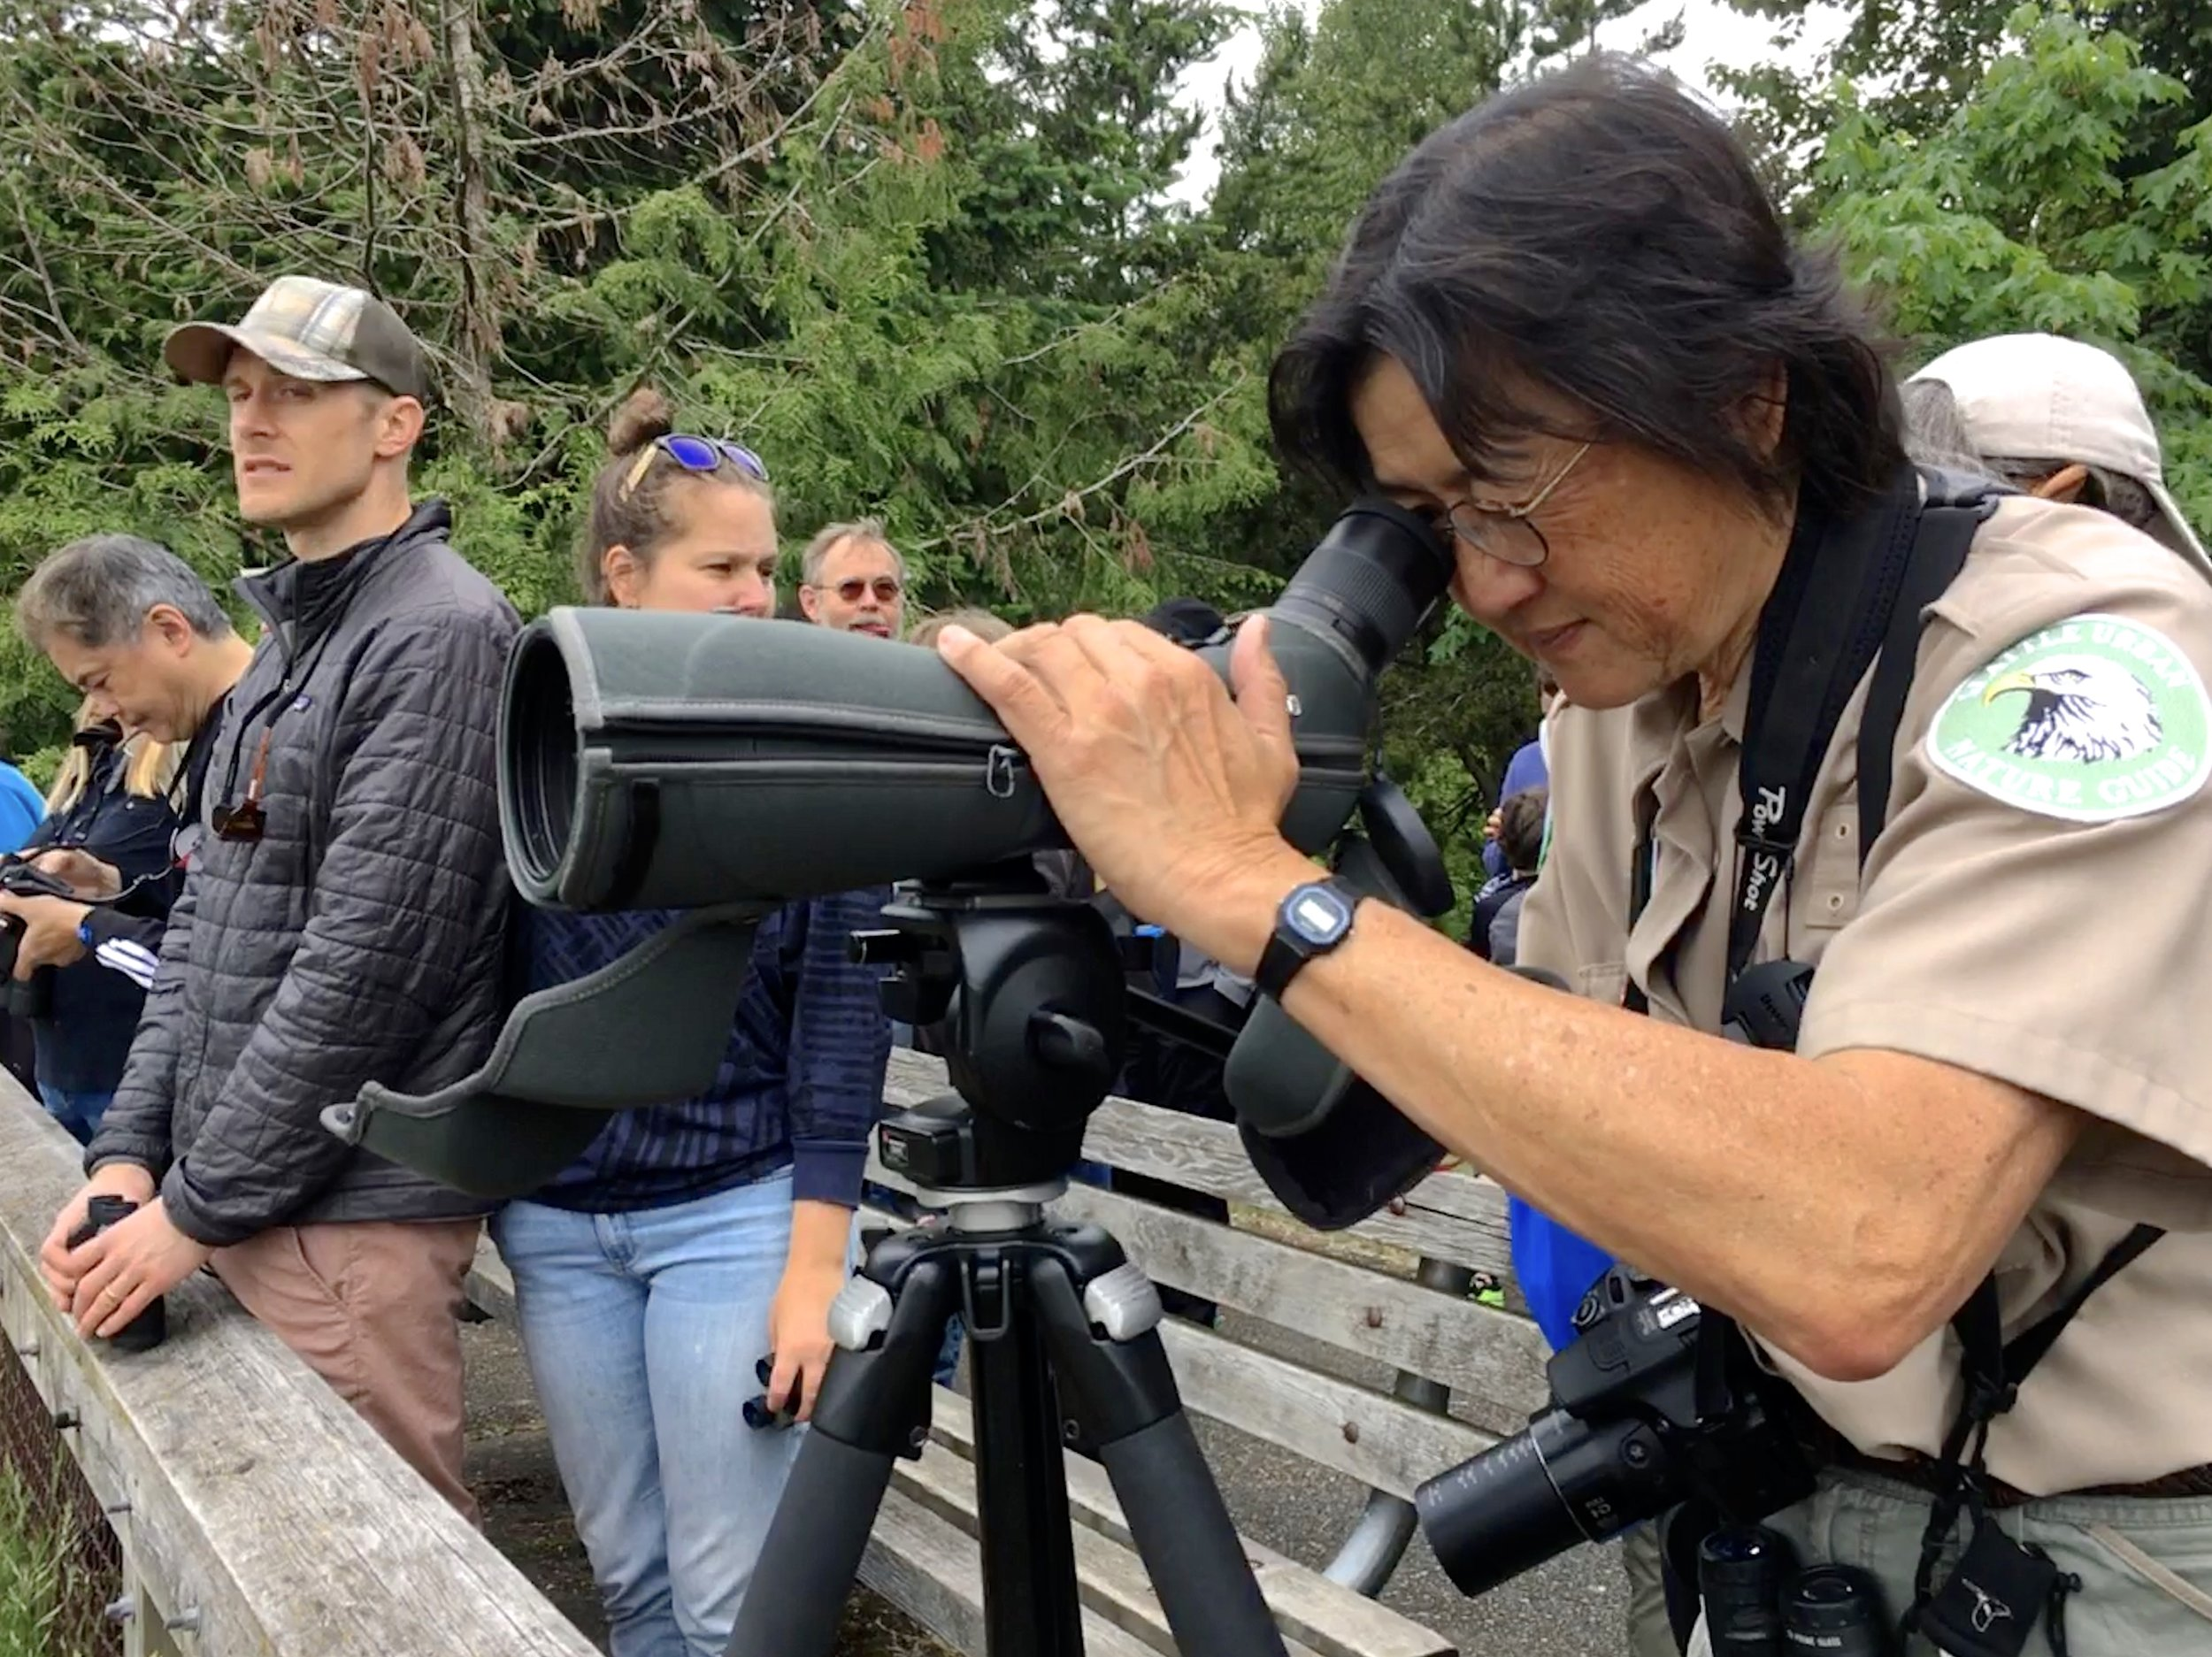 Birds of the Duwamish River Valley, June 1, 2019 - As part of our continued collaboration with the Seattle Parks Department, Naturalist Elaine Chuang ran a free program educating visitors on our native birds of the Duwamish River Valley. The event drew in visitors from all over the city for an educational talk and several birding outings by the river. Check our events page for more exciting events with Seattle Parks!